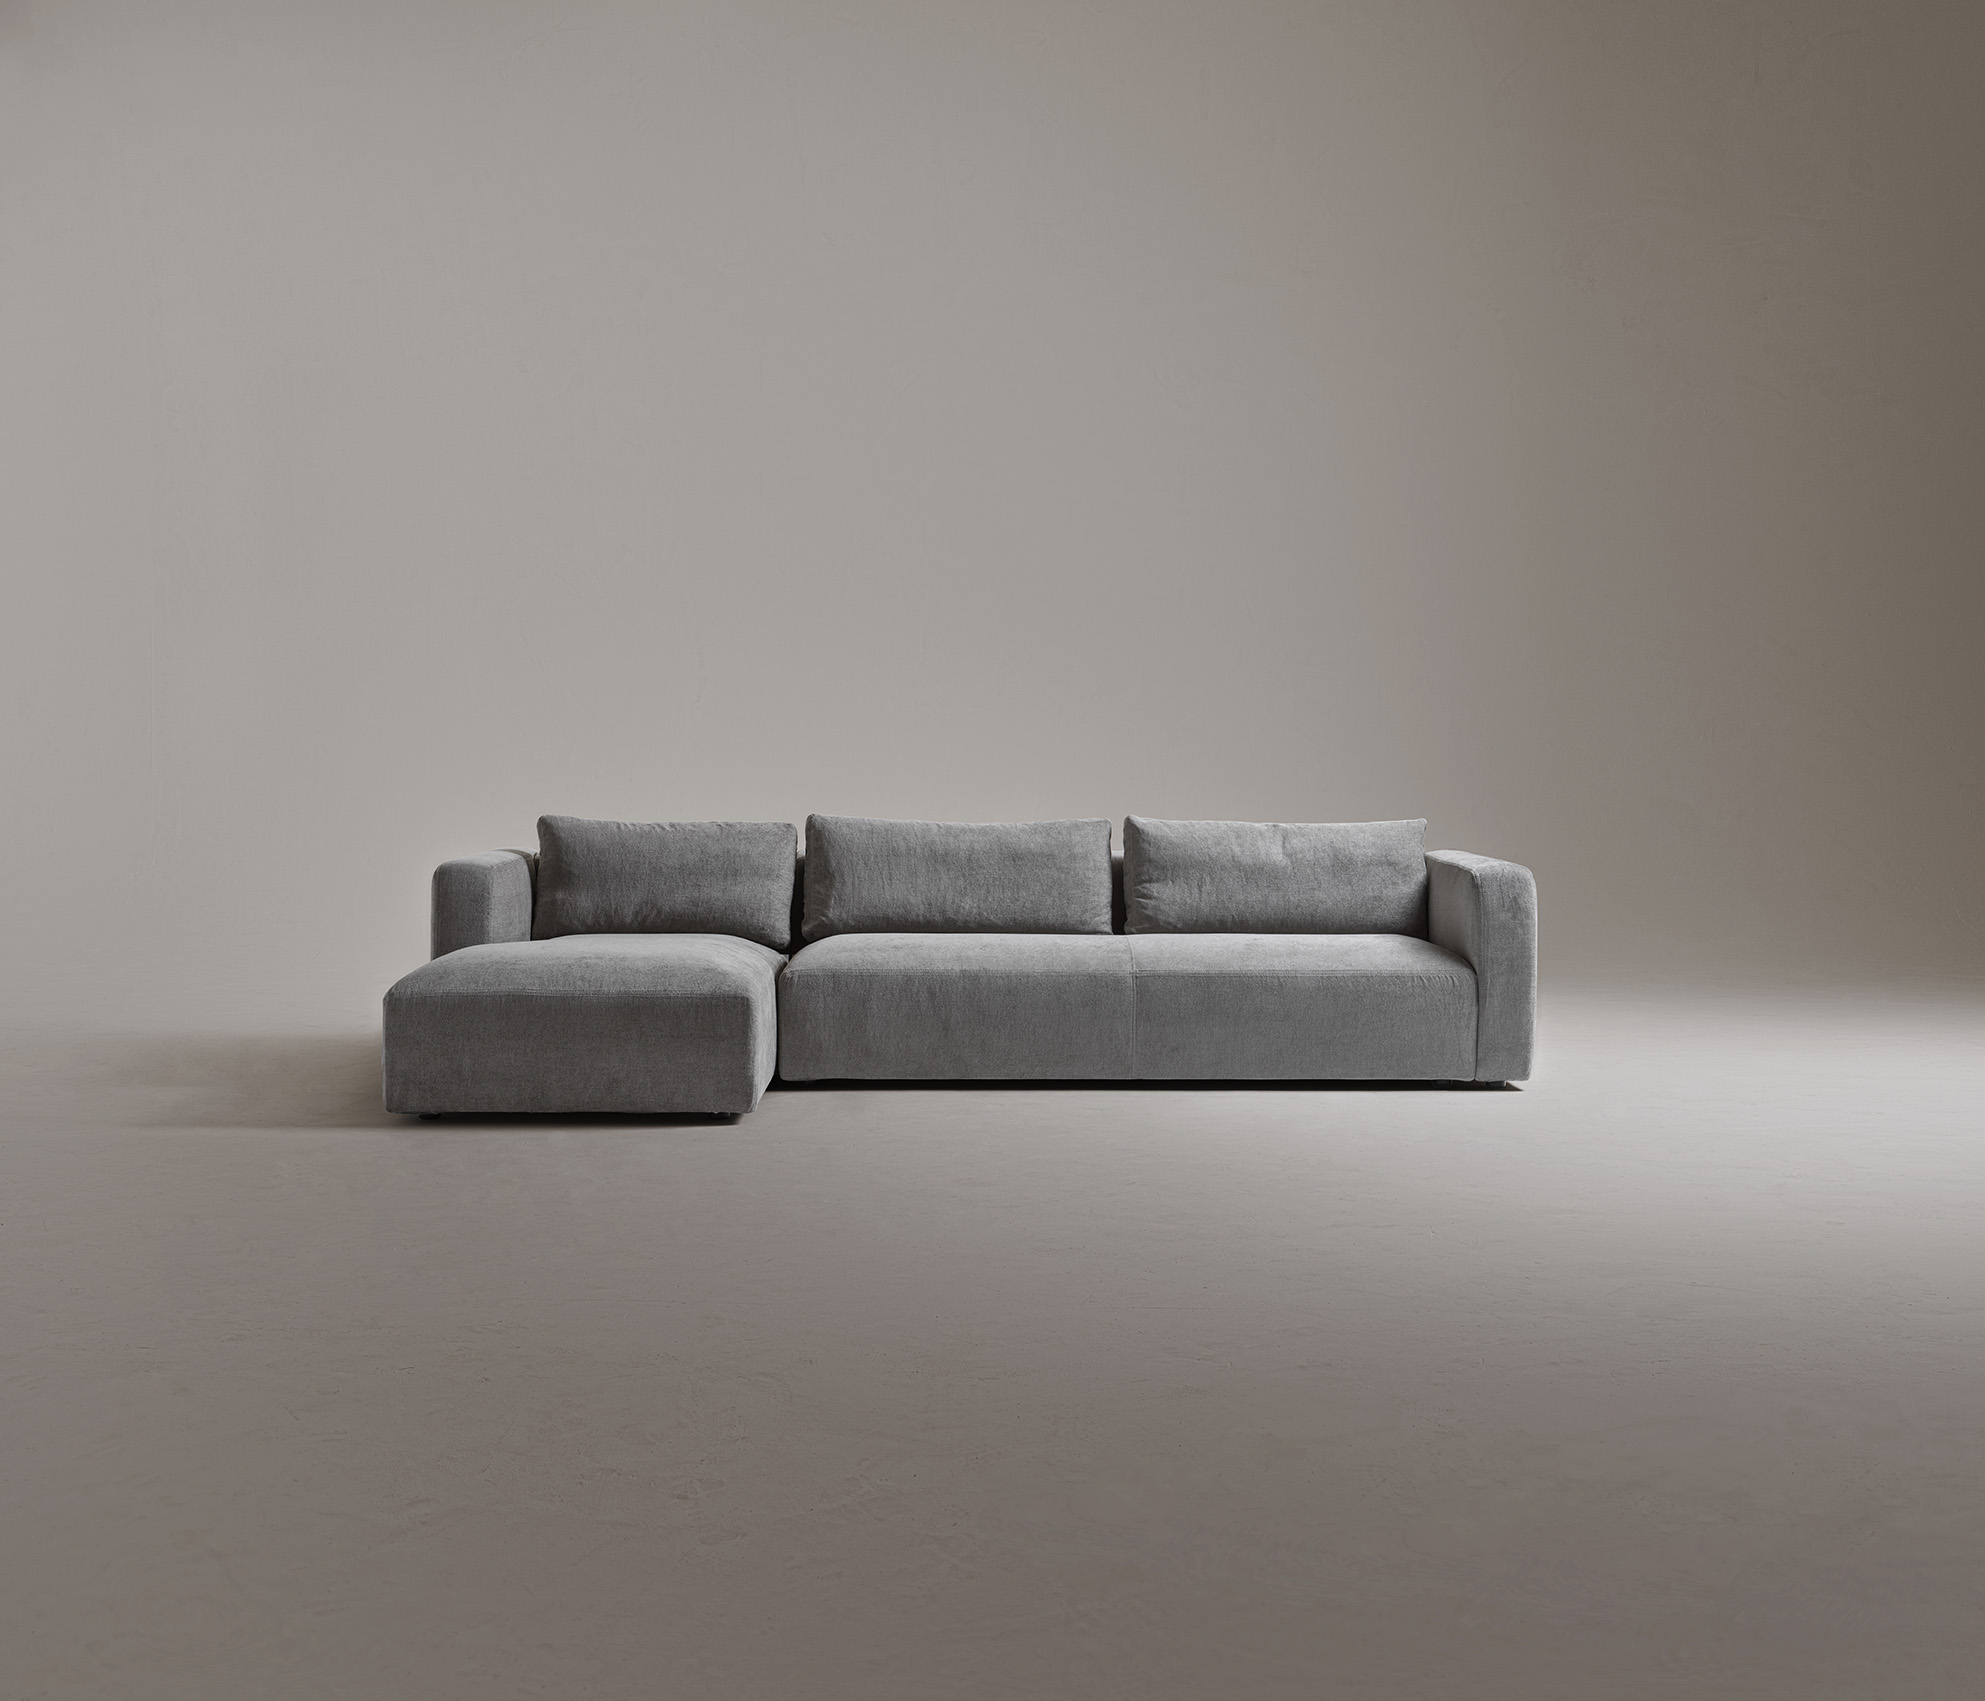 Softly Modular Sofa - Soft and cosy, an informal modular sofa featuring a generous and sumptuous seat cushion which adapts to the body, for remarkable comfort. A product that will fit in with any style of home. Softly is a sofa with a wooden frame covered in non-deformable polyurethane foam and polyester fibre lining. The seat is made of non-deformable polyurethane foam of different densities and polyester fibre lining. Removable fabric or leather or raw leather edges cut covers. This sofa is a modular sofa so there are different combinations available. Please enquire for more information and prices. | Matter of Stuff